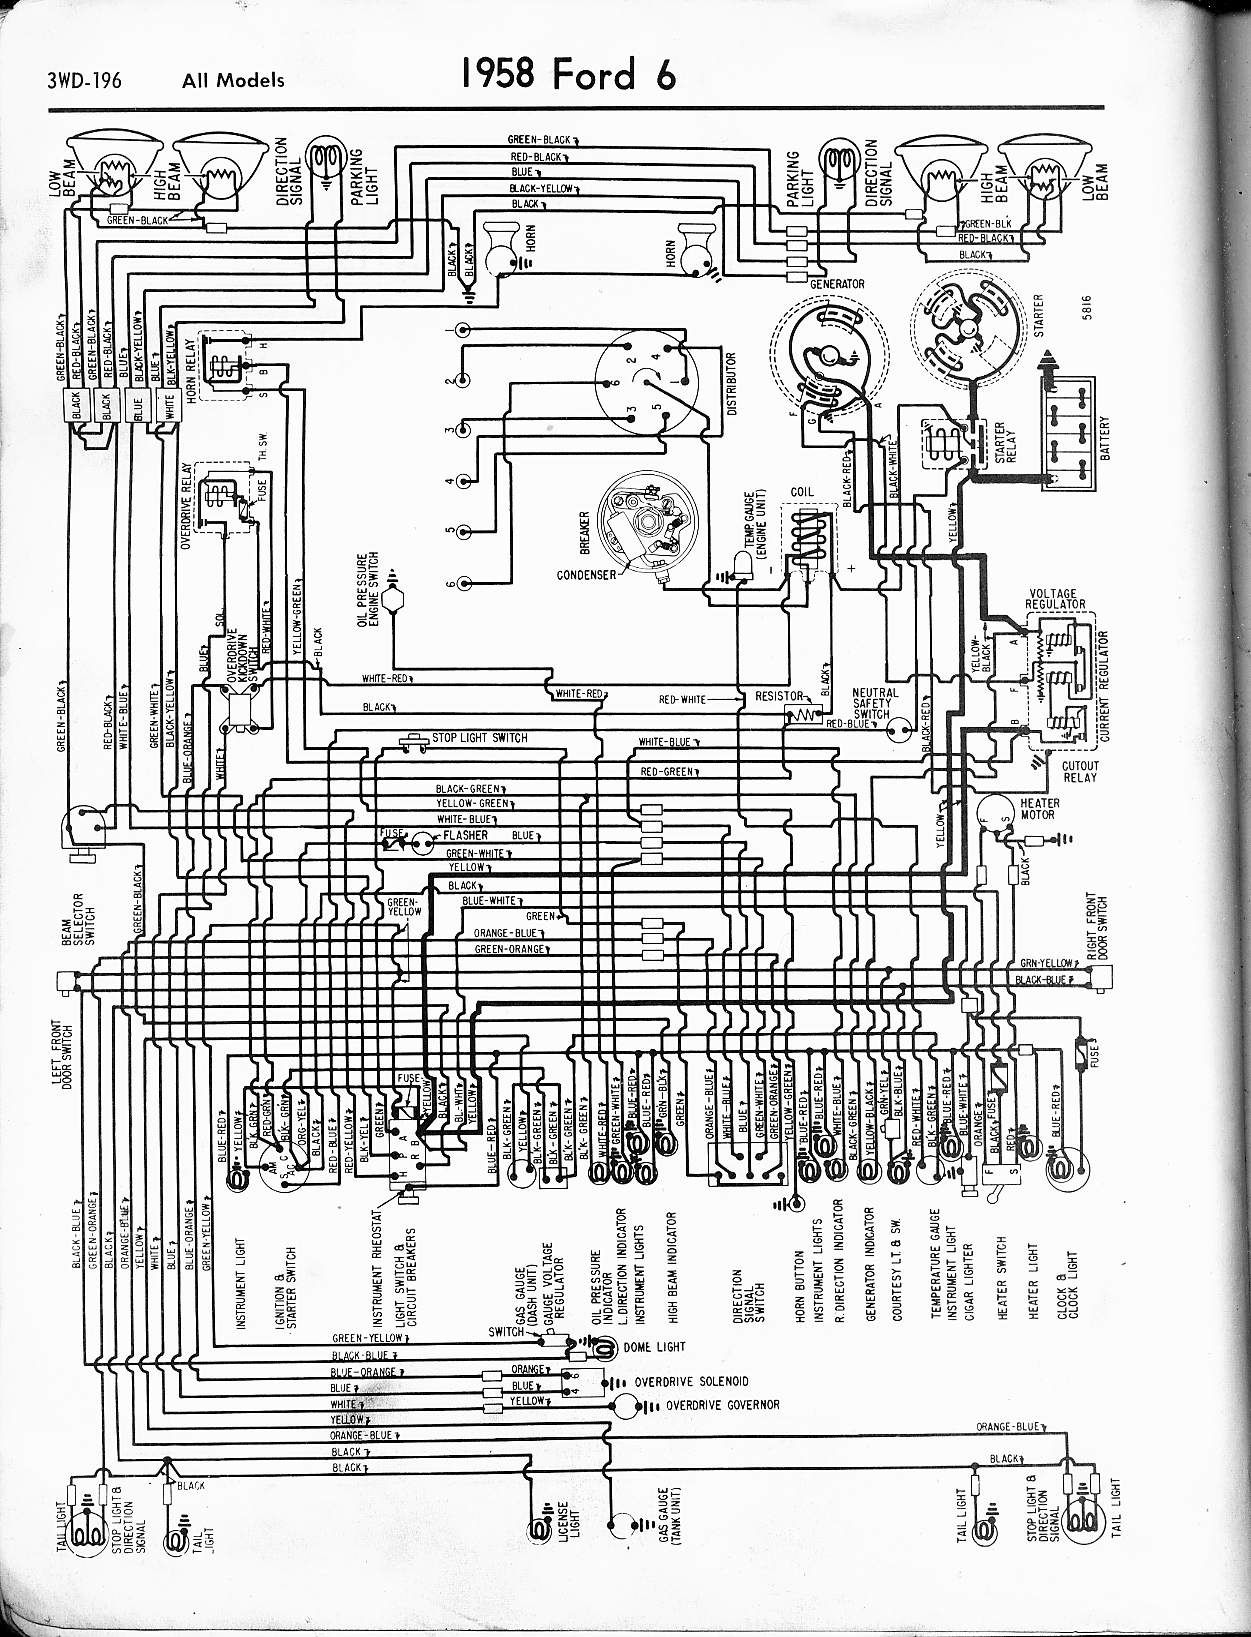 wiring diagram for 1972 ford f100 the wiring diagram 1970 ford f100 wiring diagram diagram wiring diagram